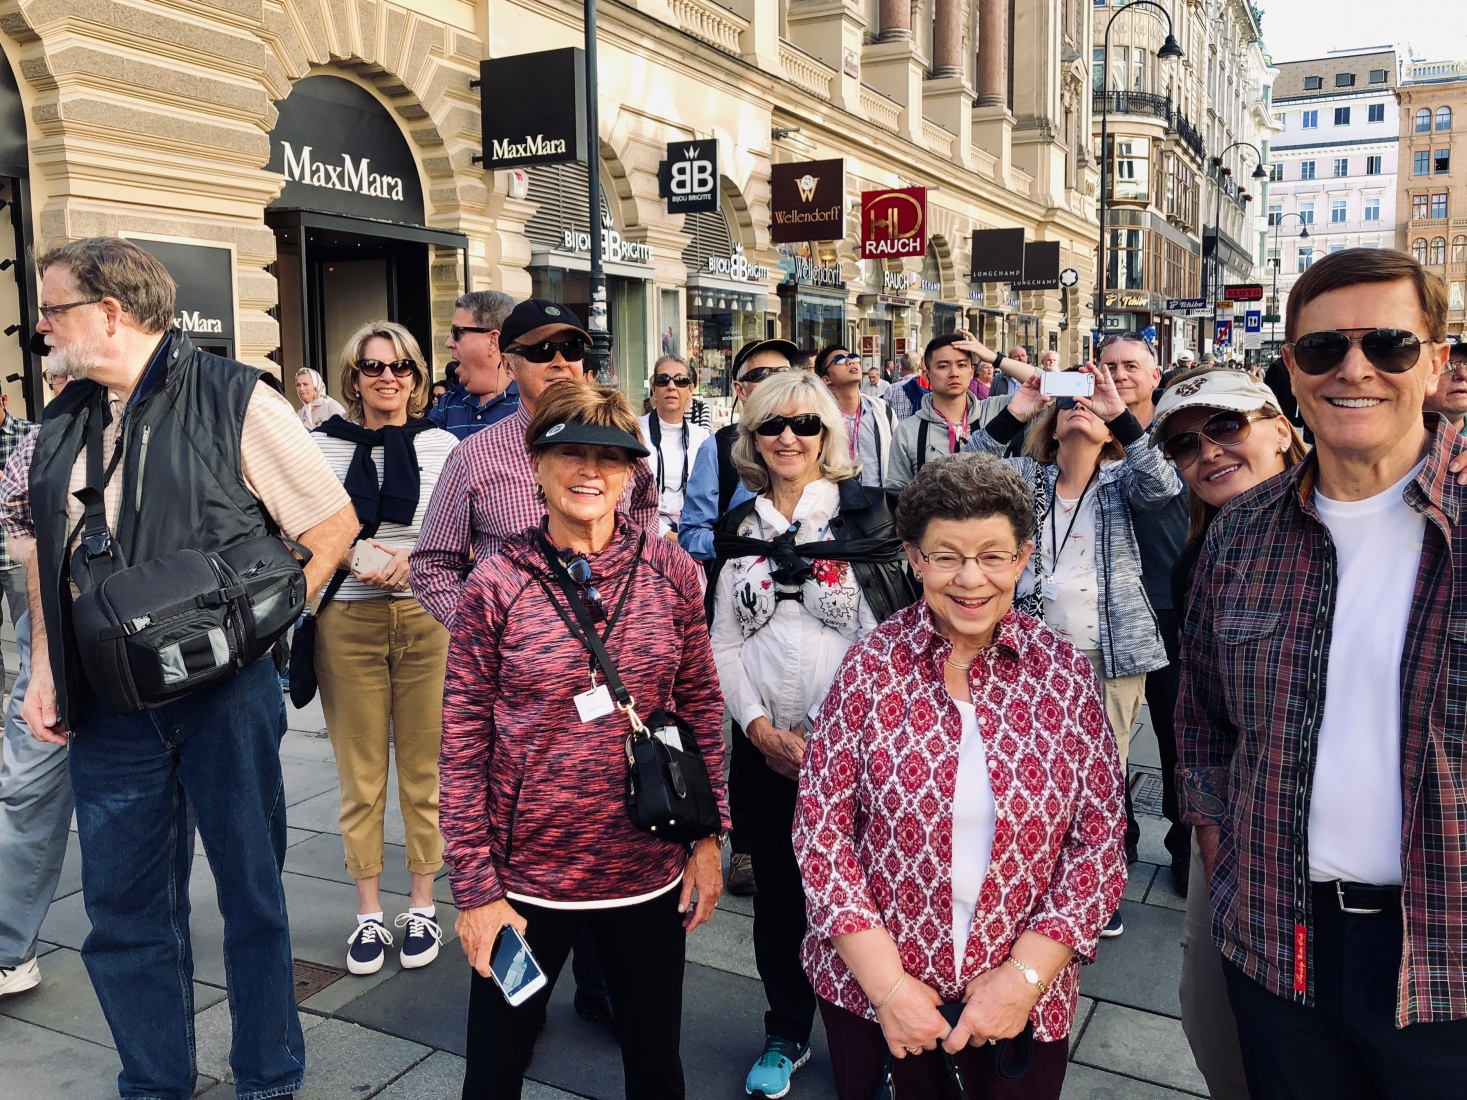 A group of National Geographic passengers on a walking tour in Vienna, Austria.